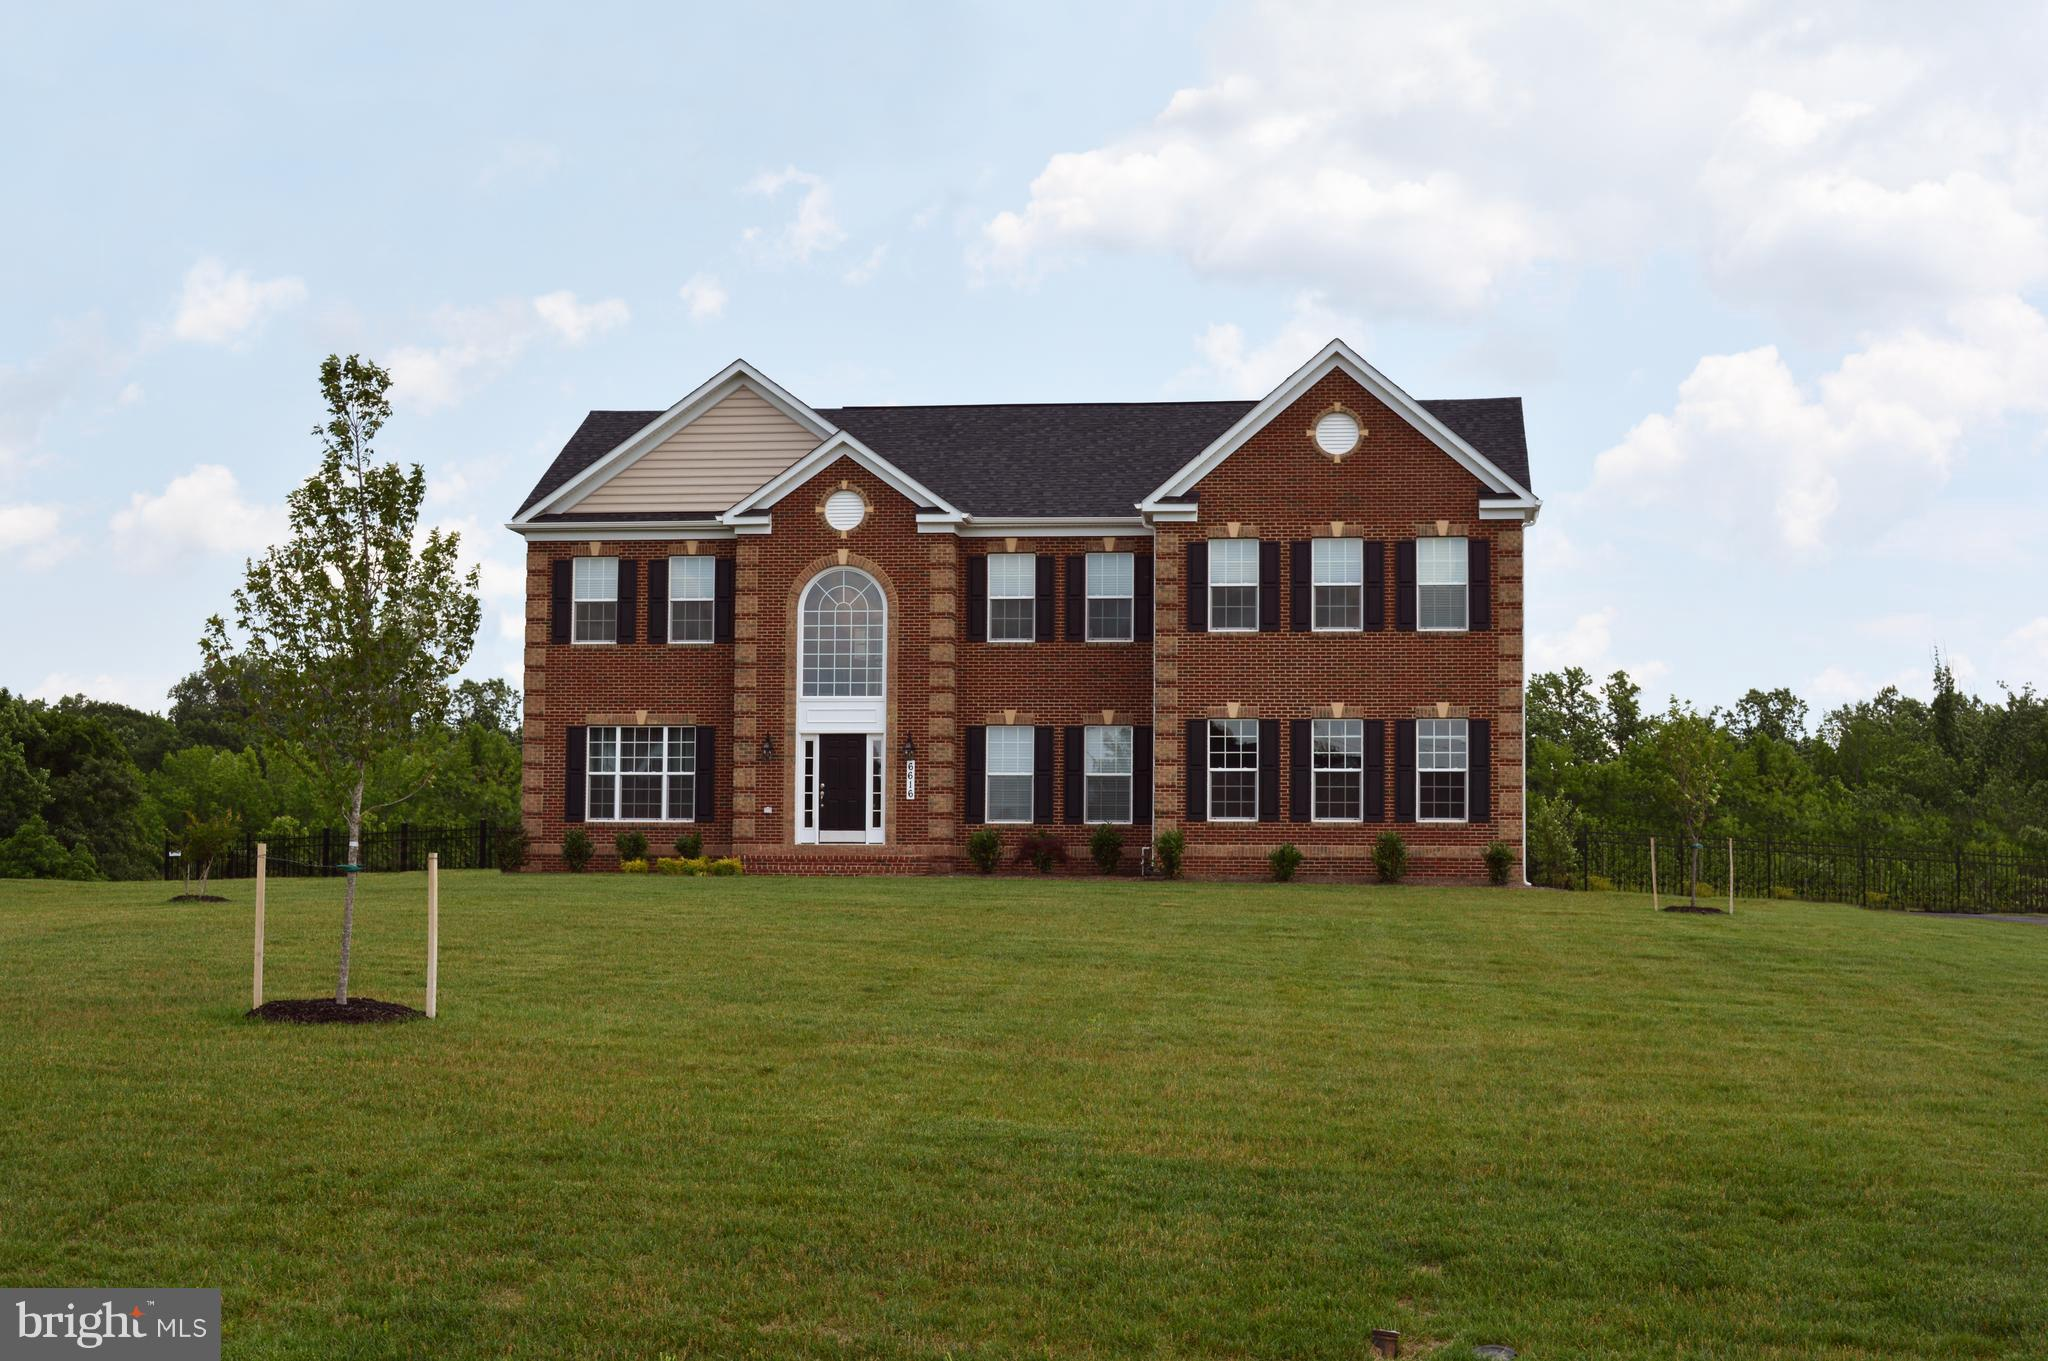 14007 YOUDERIAN DRIVE, BOWIE, MD 20721